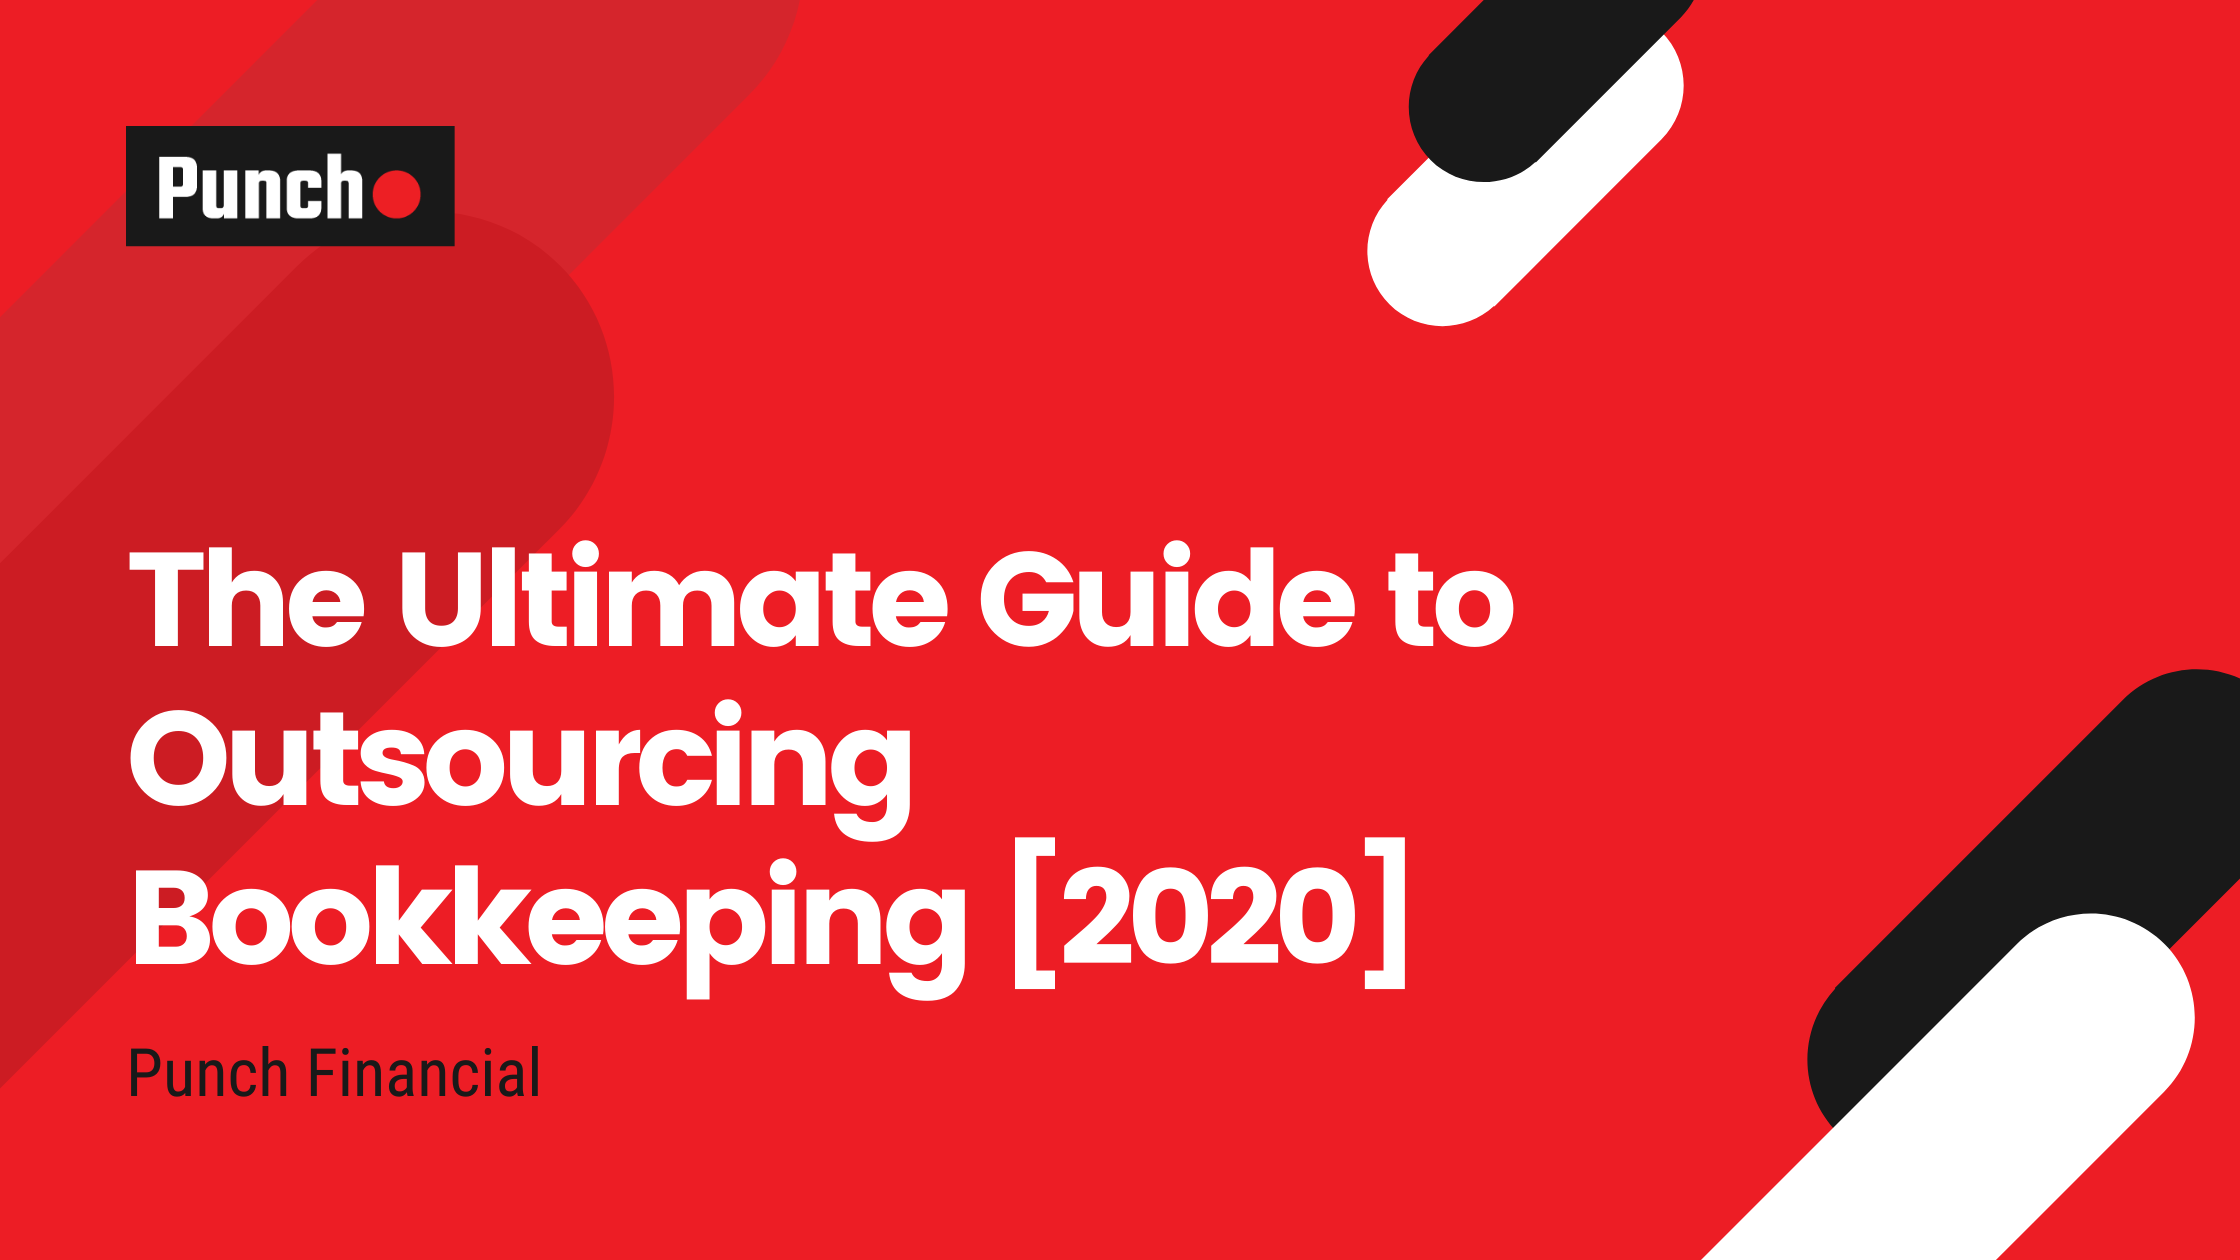 The Ultimate Guide to Outsourcing Bookkeeping [2020]